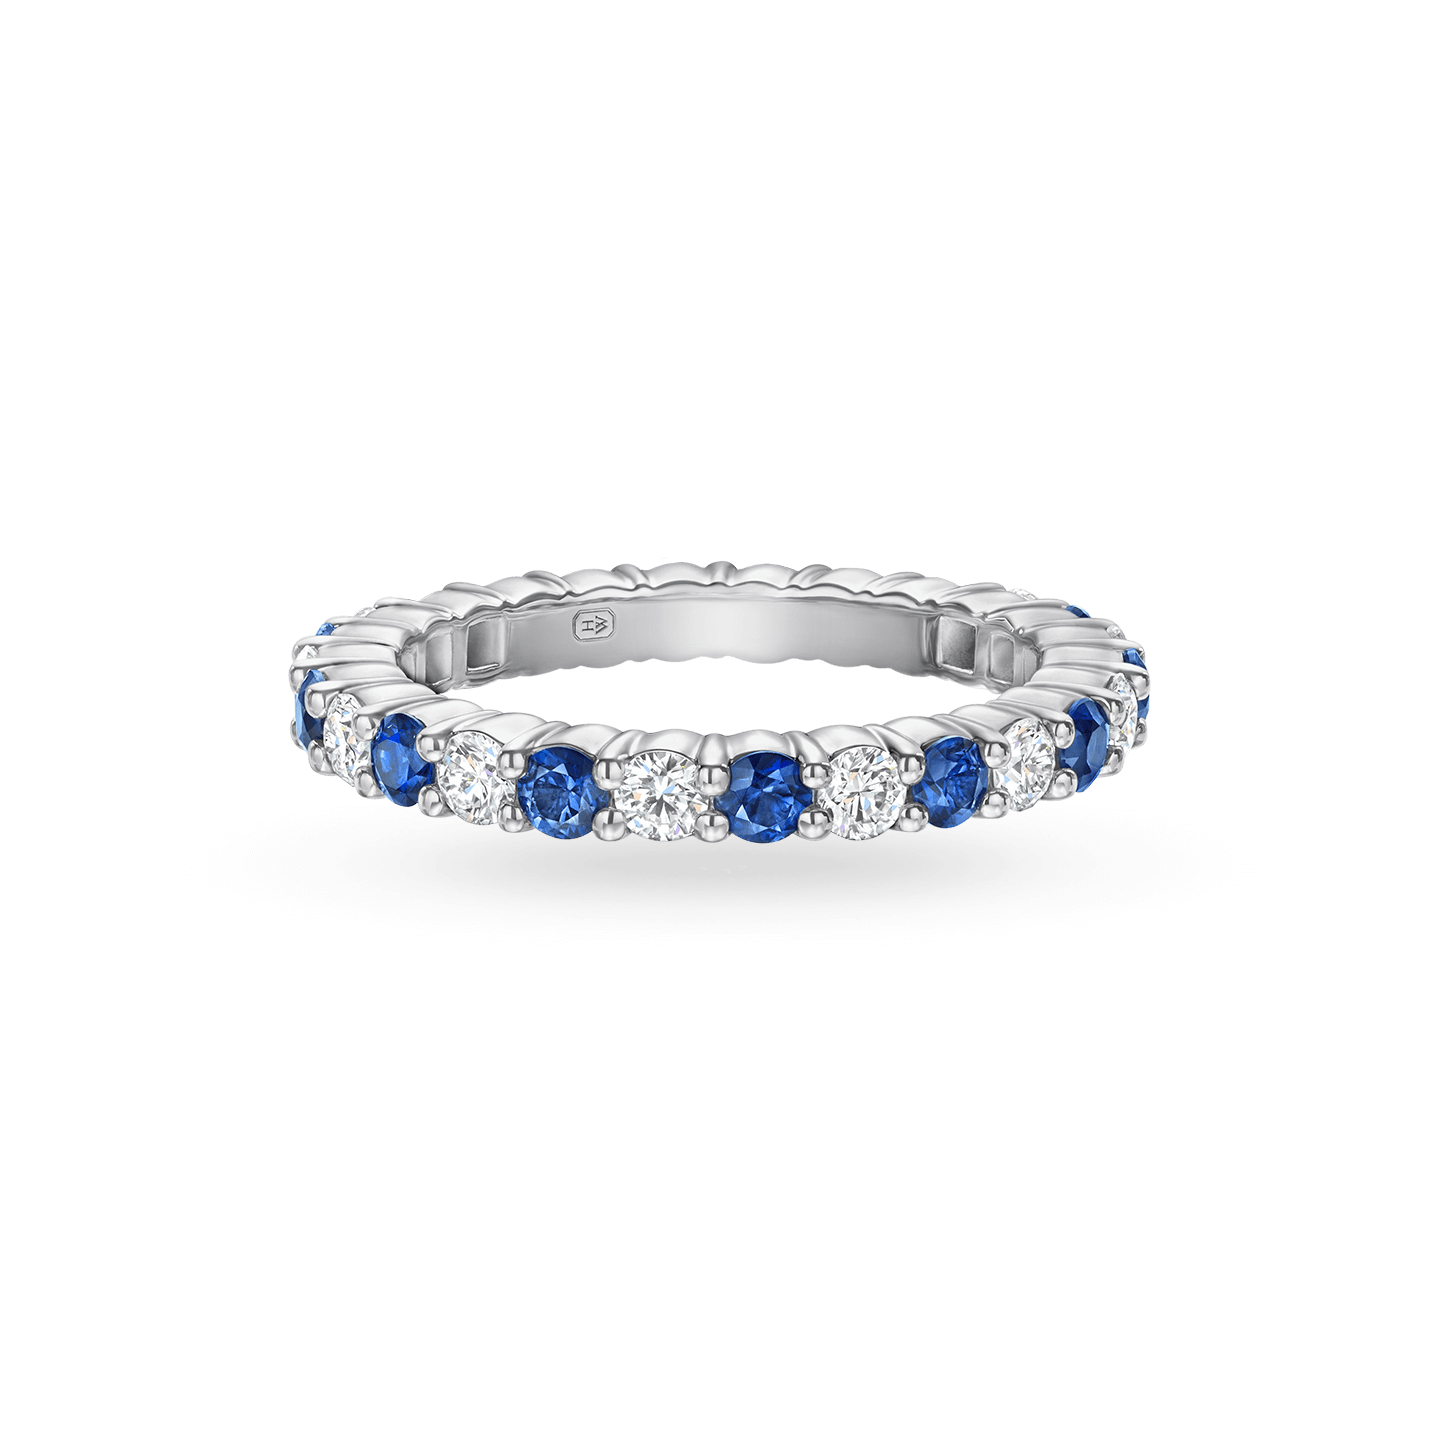 Prong-Set Round Brilliant Sapphire and Diamond Wedding Band, Product Image 1